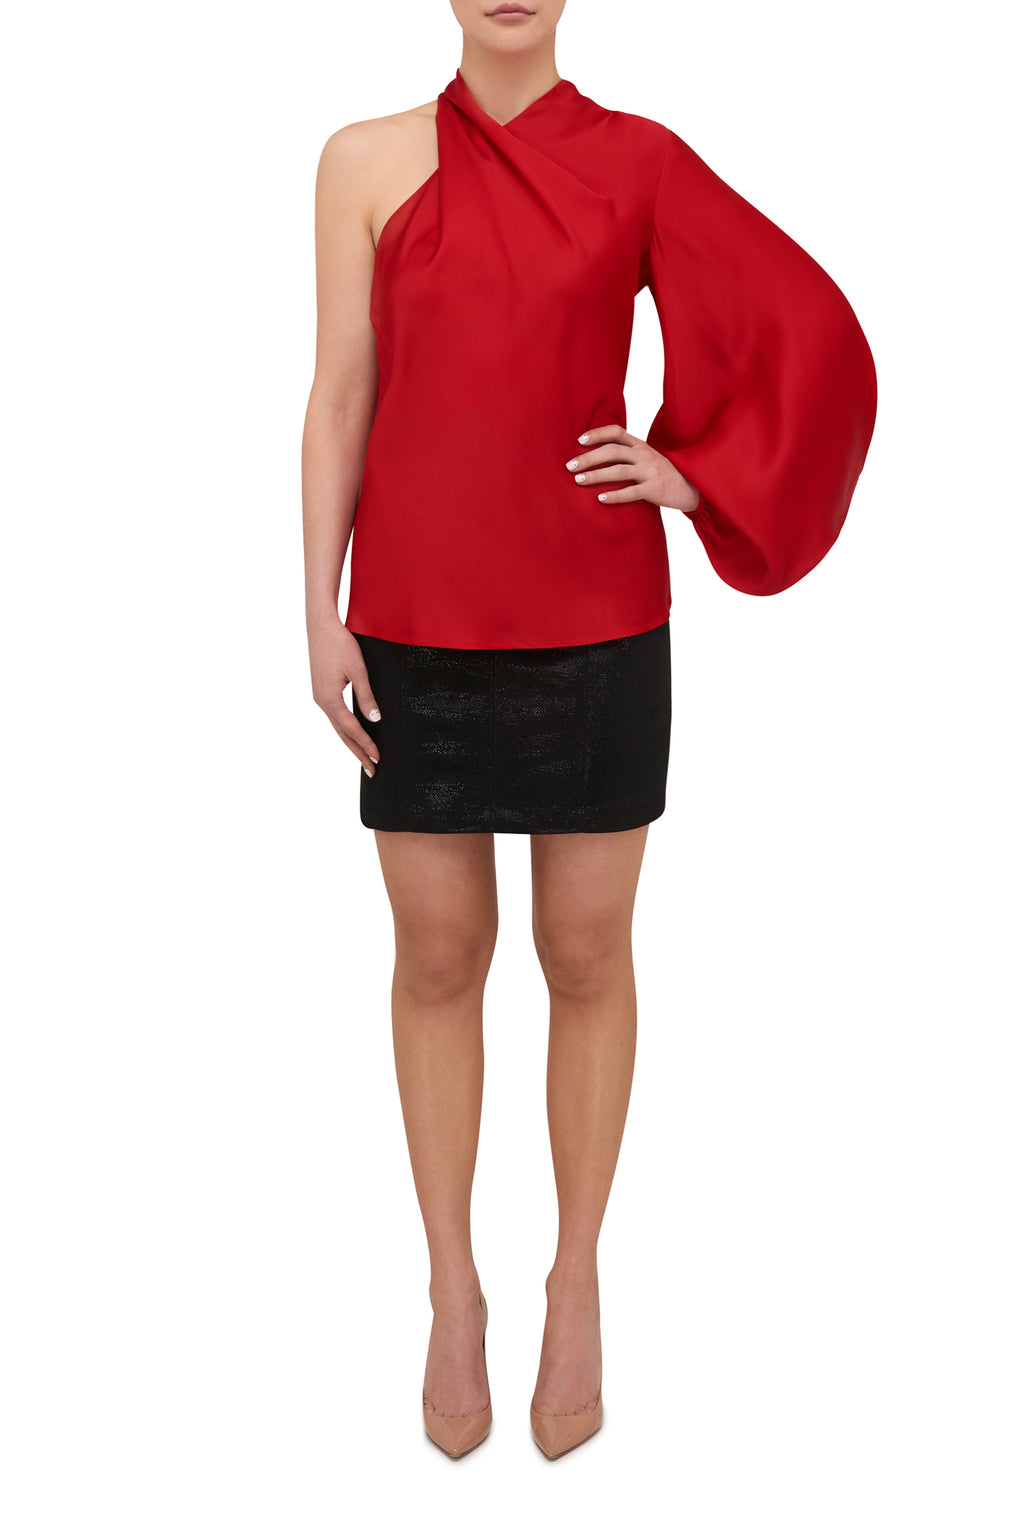 Attitude One Sleeve Blouse - Scarlett Red